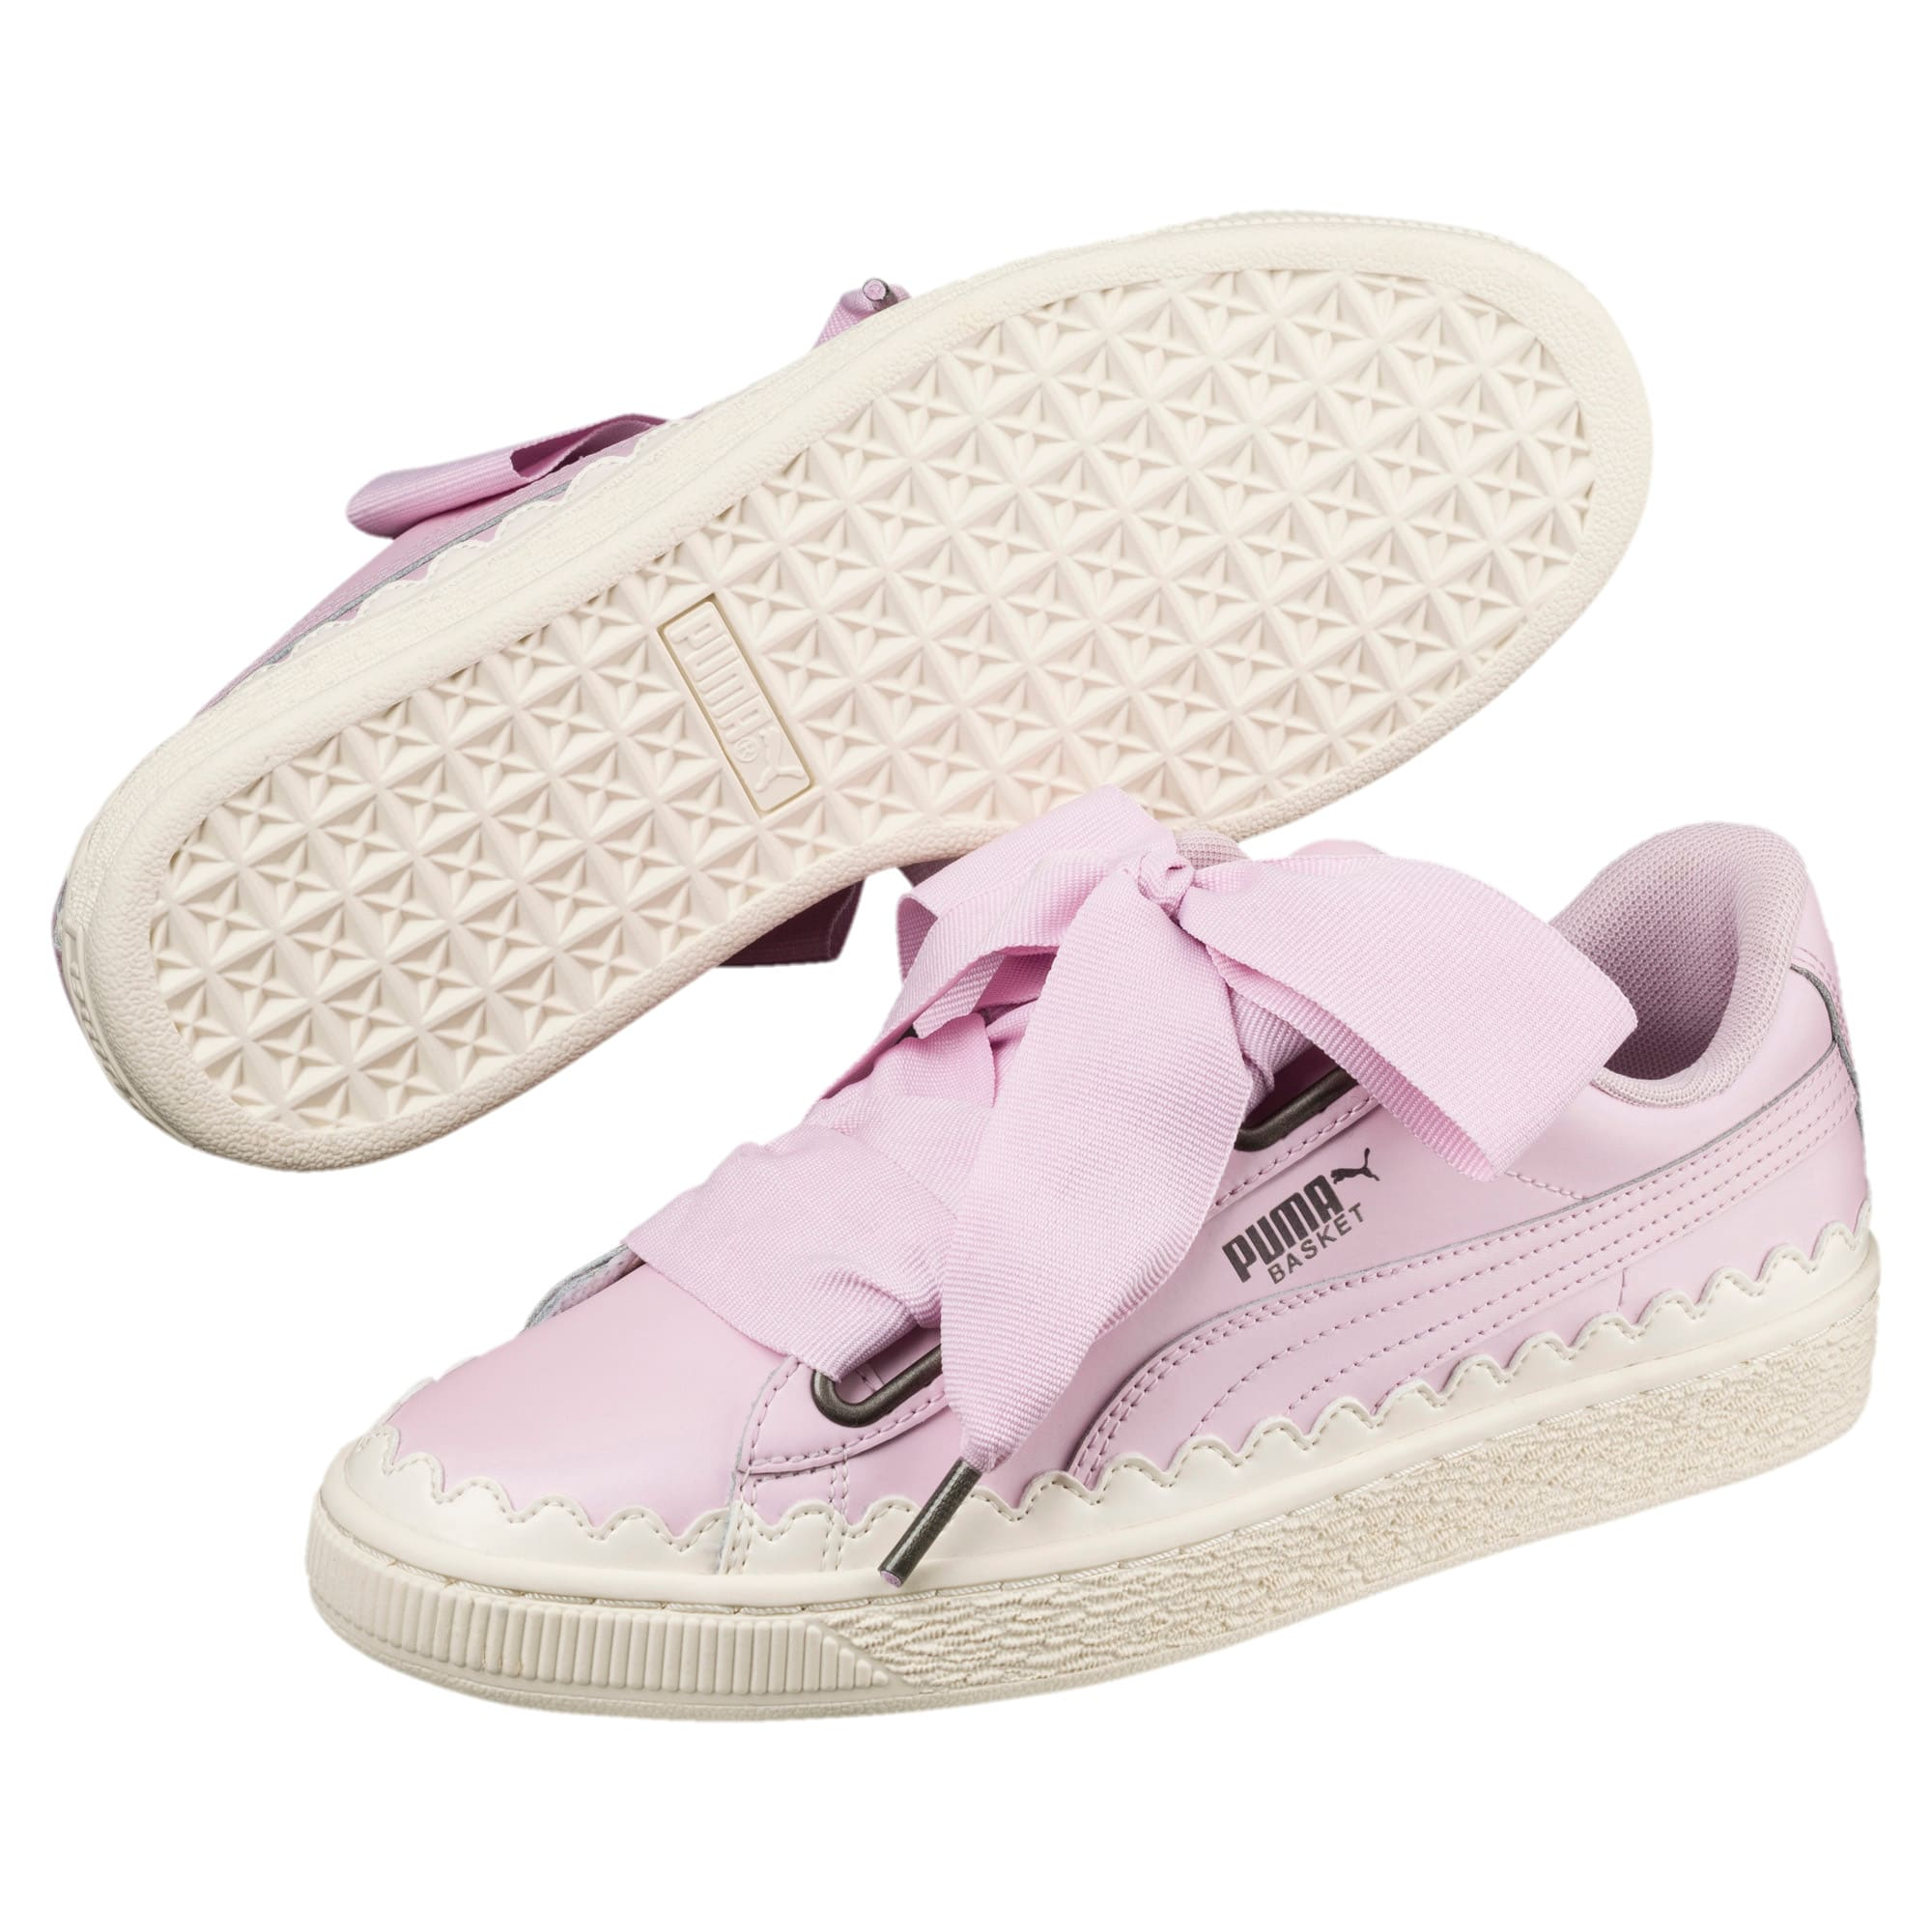 Basket Heart Scallop Women's Trainers